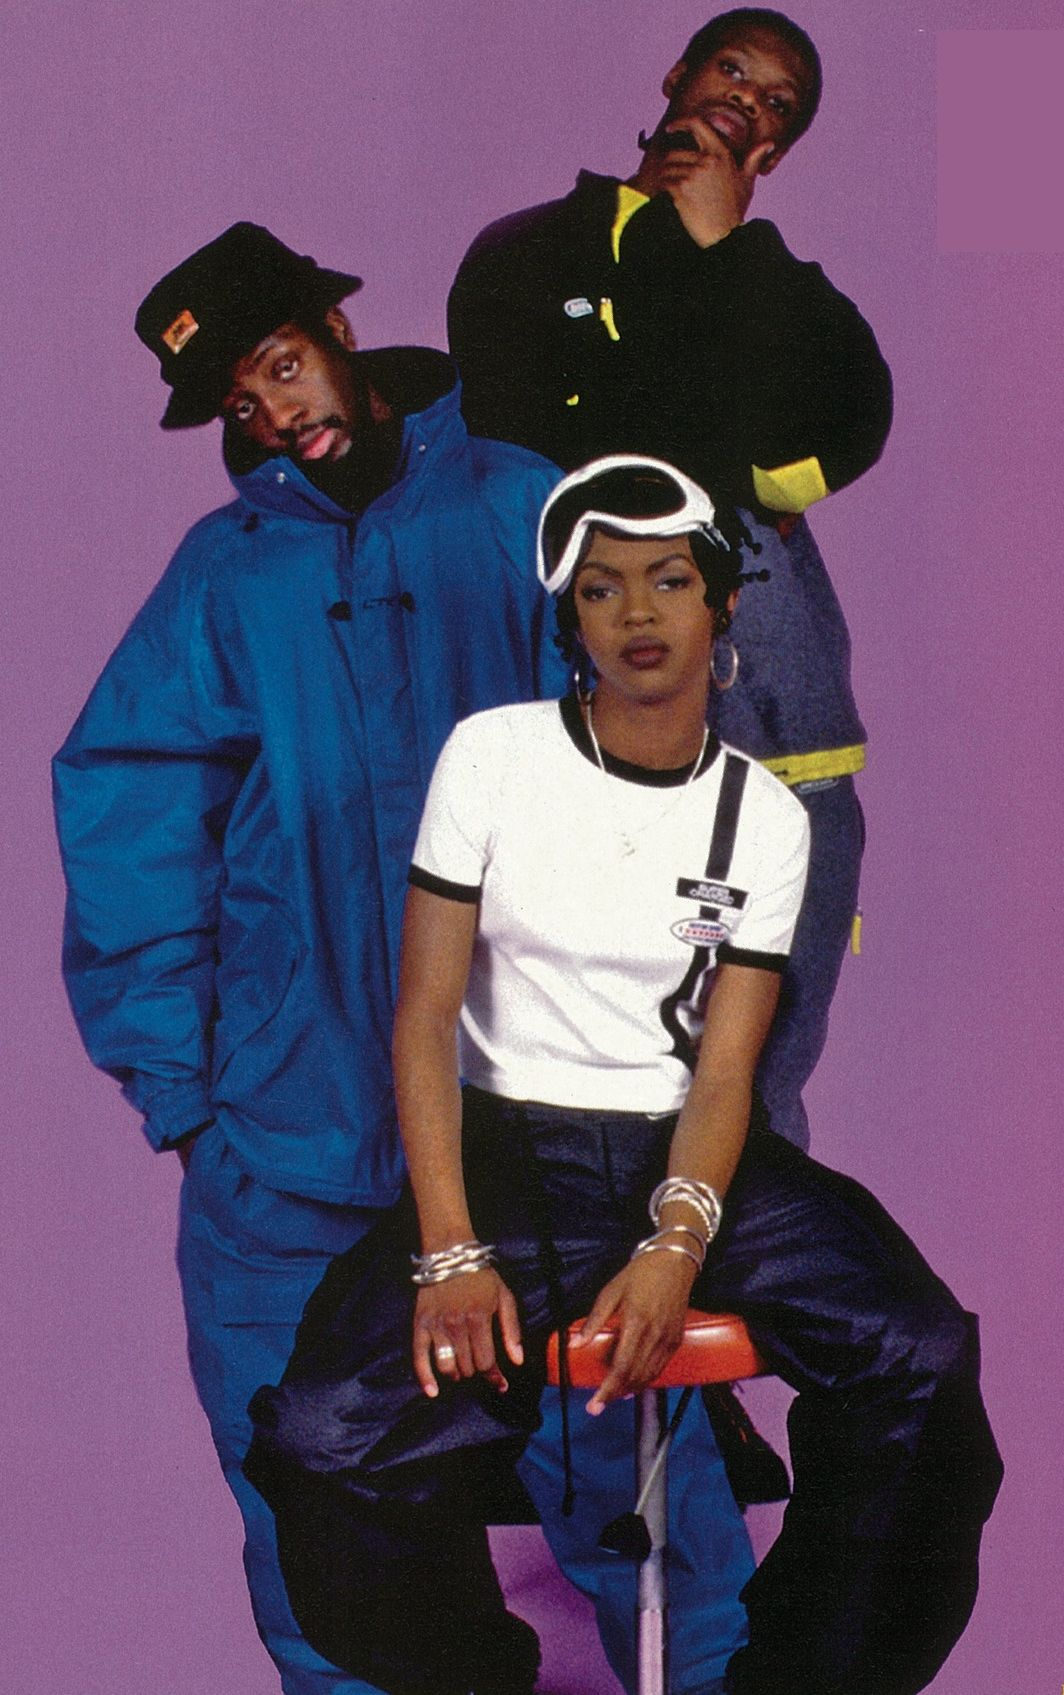 Fugees, hip hop group who rose to fame in the mid-1990s. Their repertoire included elements of hip hop, soul and Caribbean music, particularly reggae. The members of the group were rapper/singer/producer Wyclef Jean, rapper/singer/producer Lauryn Hill and rapper Pras Michel. Deriving their name from the term refugee, Jean and Pras are Haitian, while Hill is American. Their sophomore album, The Score, sold 17 million copies worldwide, launching the group into superstardom.